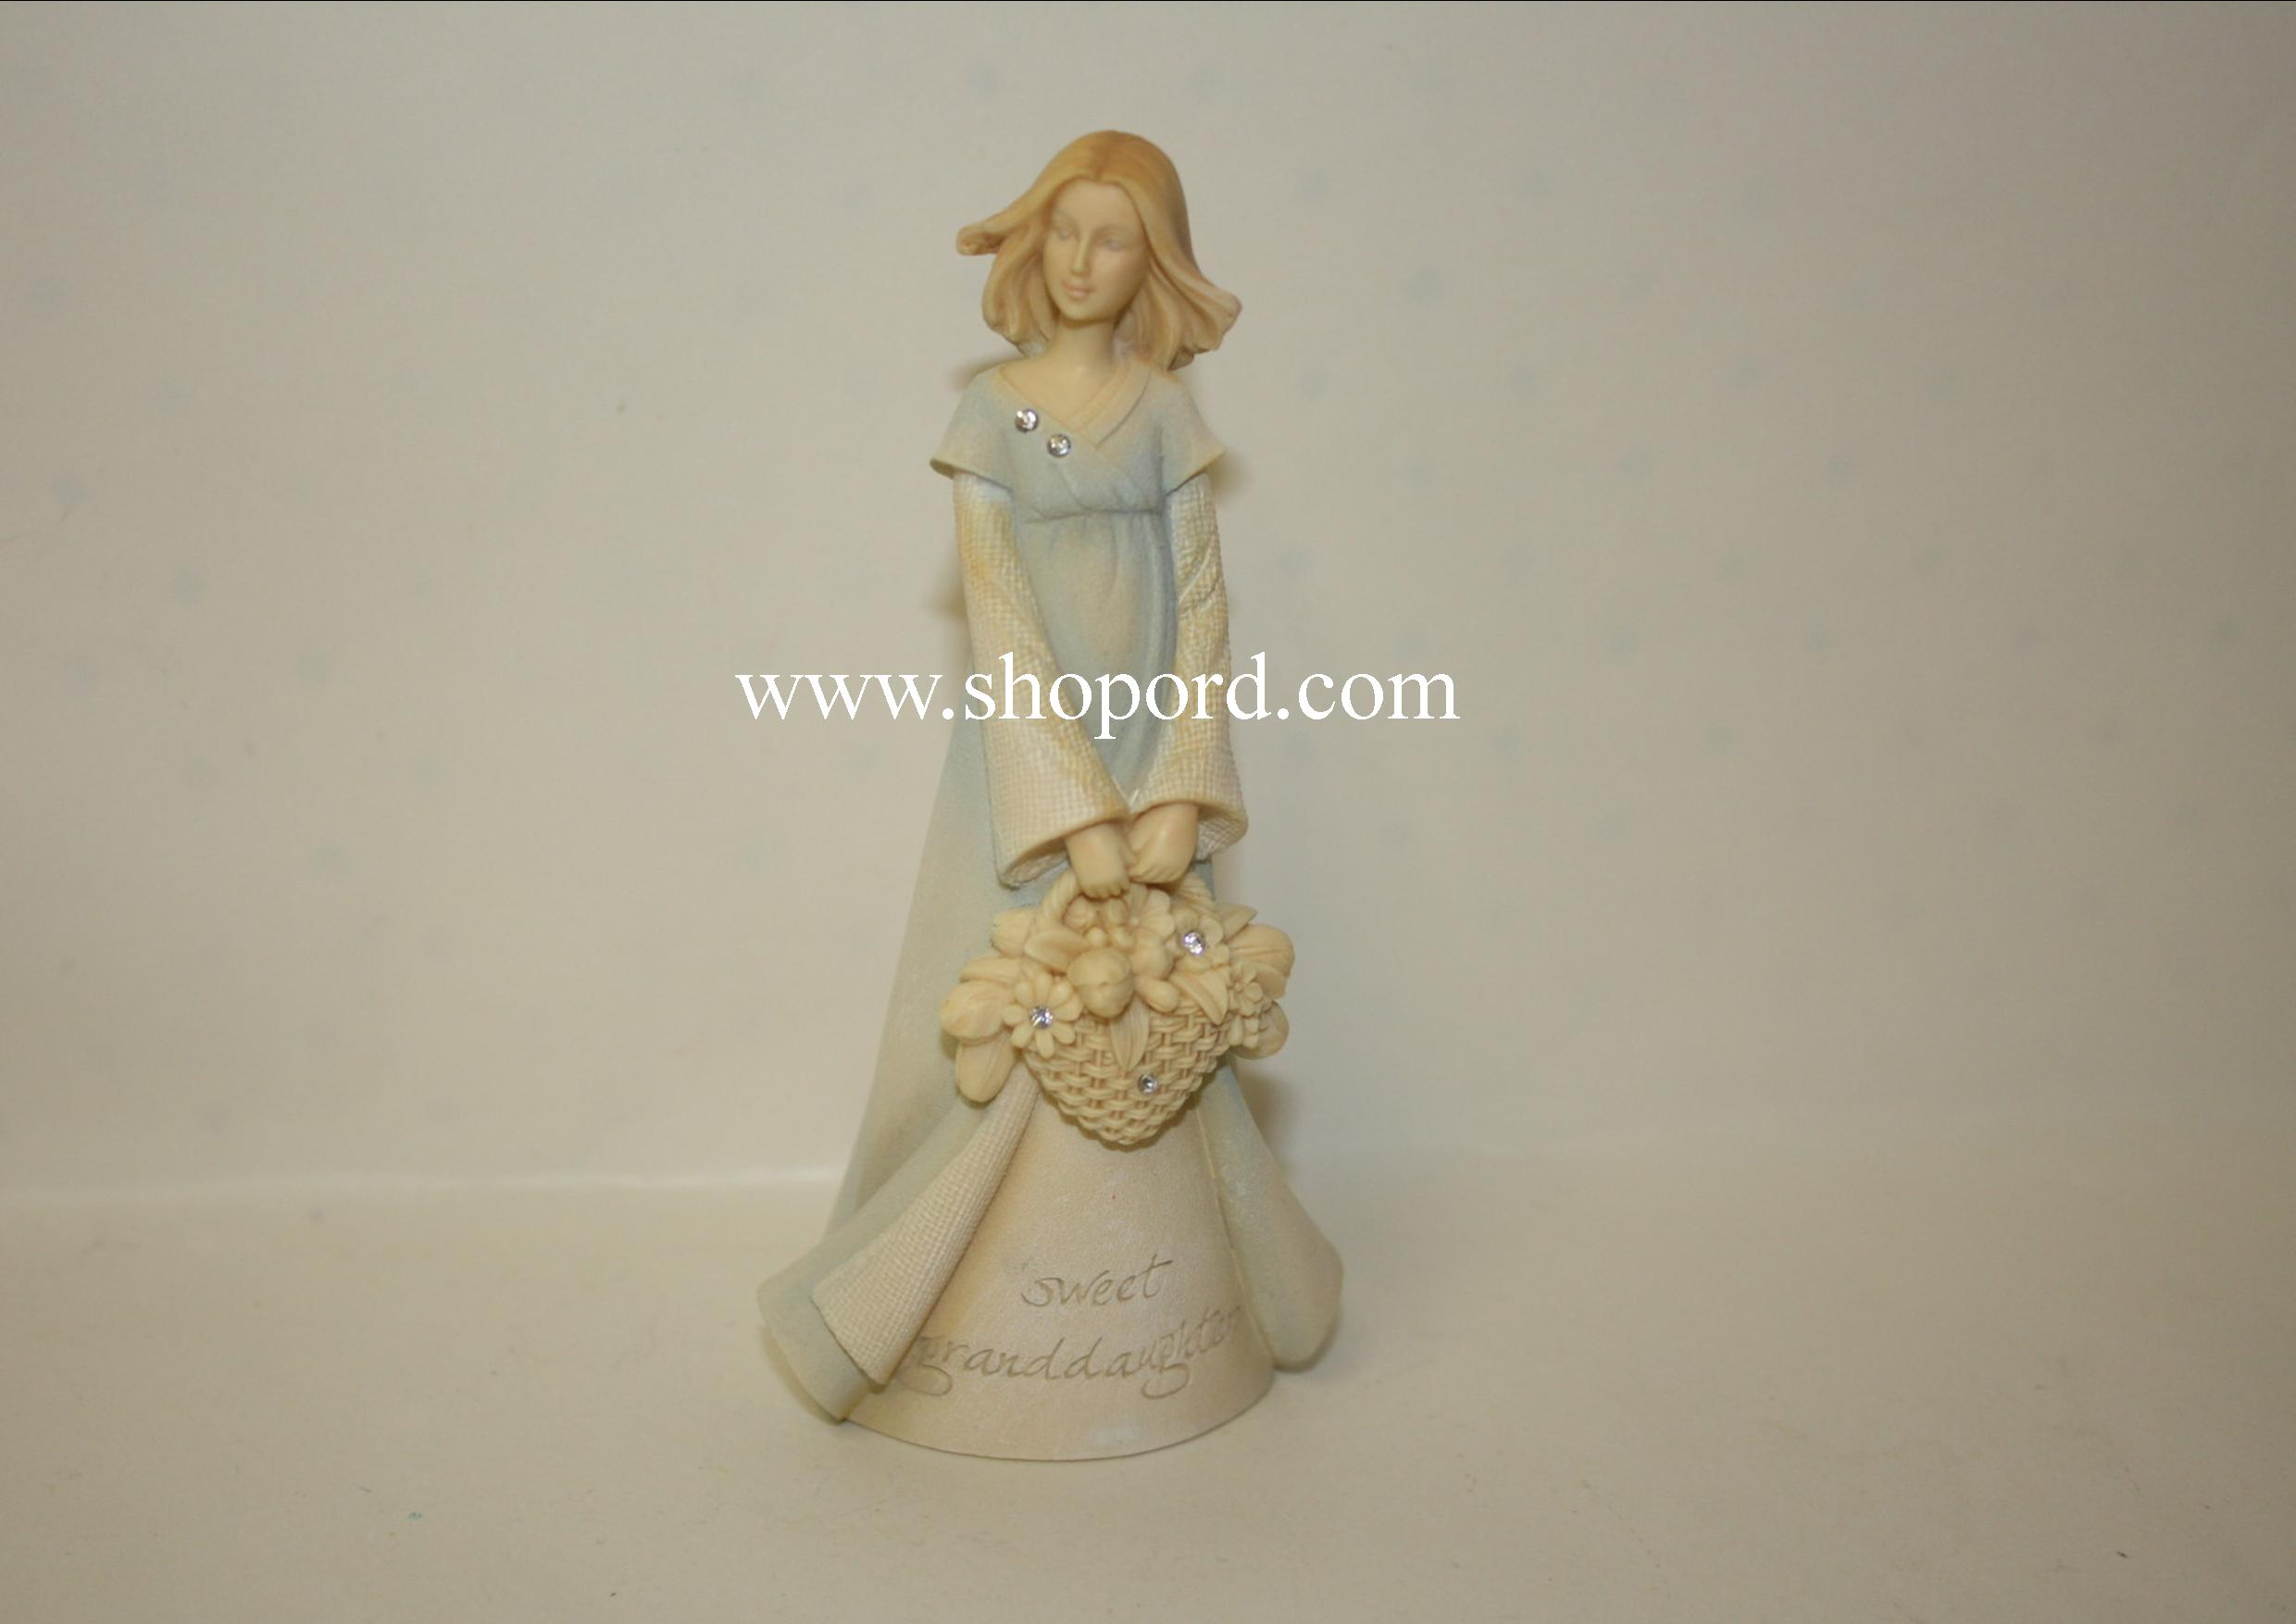 Enesco Foundation Angel Granddaughter Mini Figurine 4044752